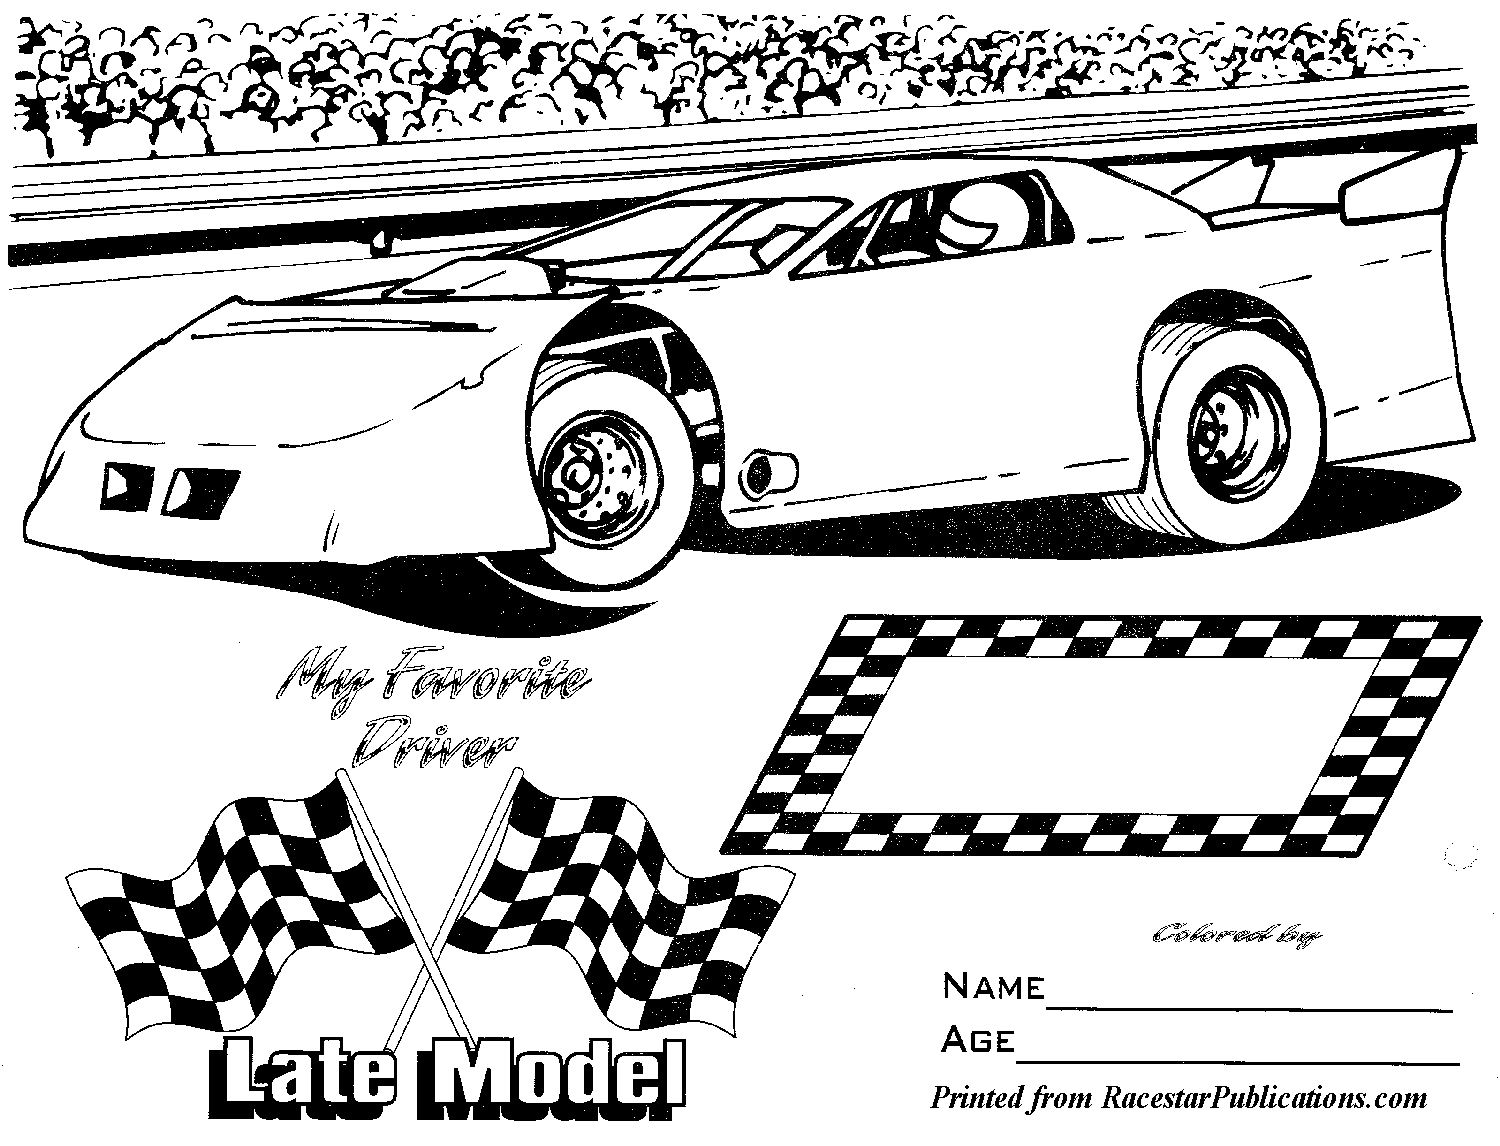 Dirt Car Coloring Pages : Dirt modified coloring pages pixshark images